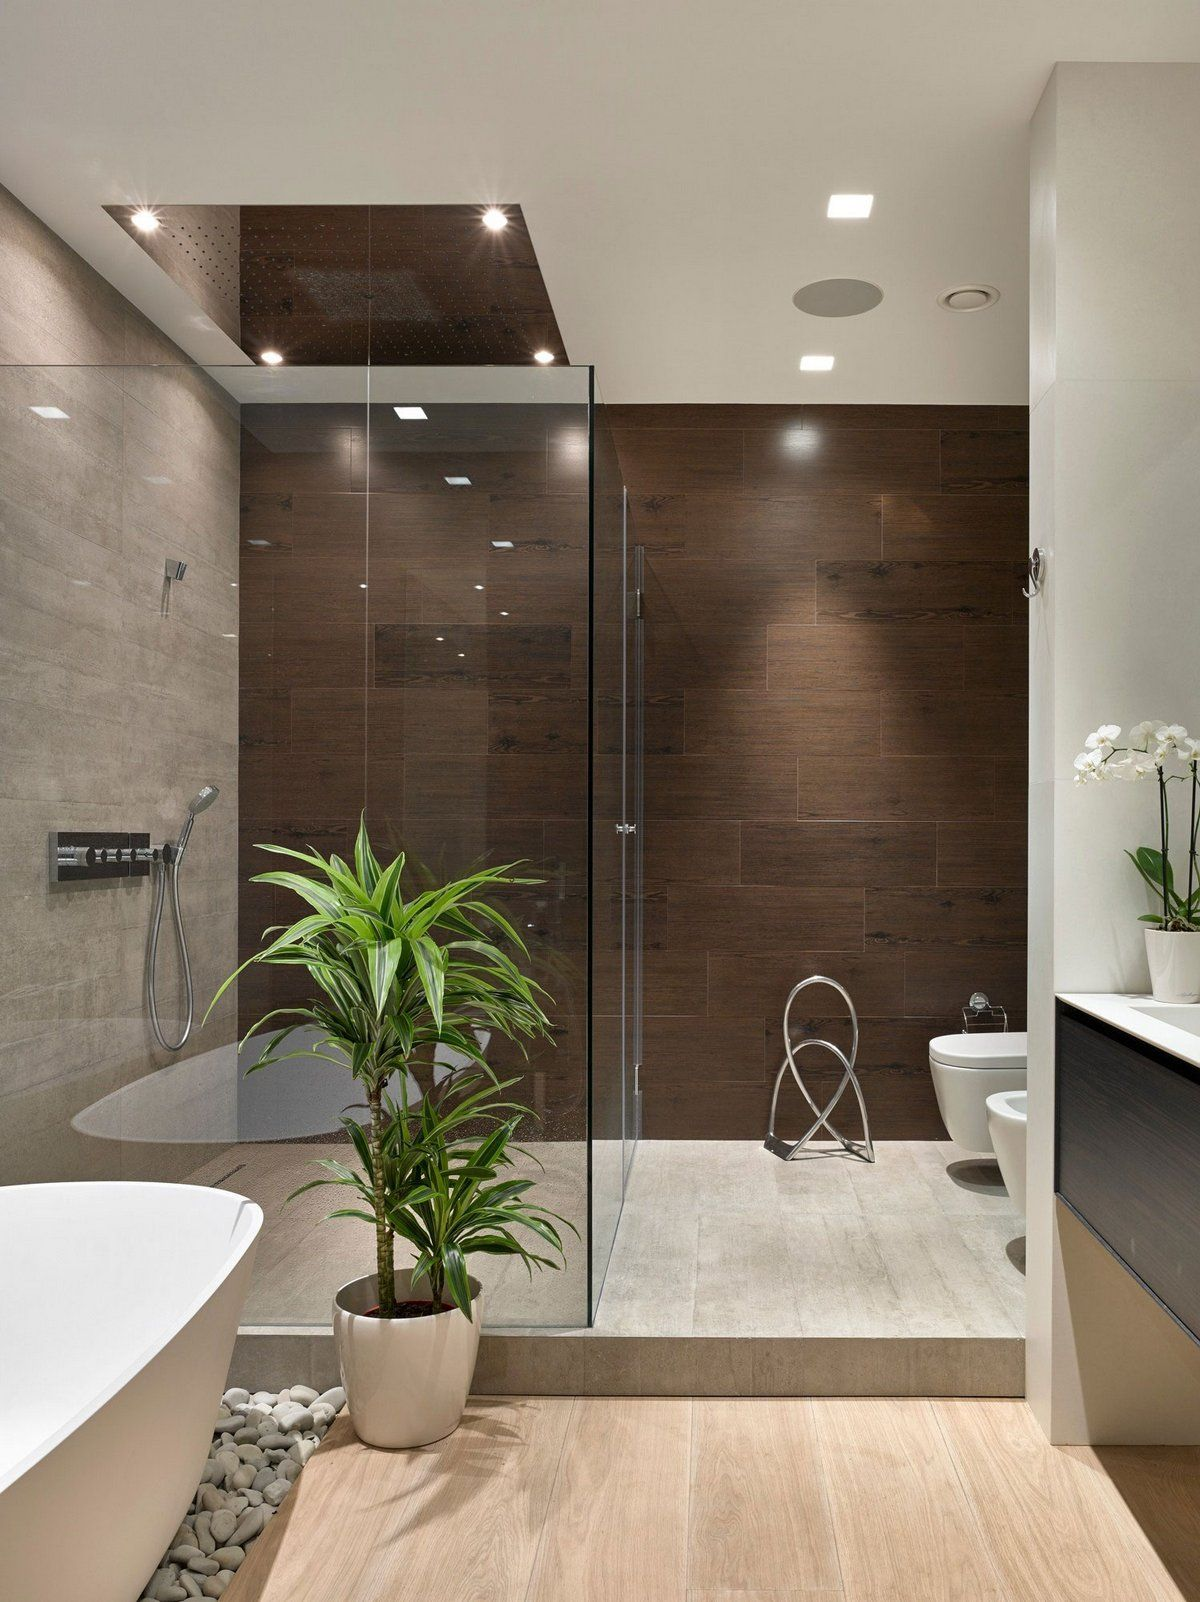 Superieur Modern Bathroom Design By Architect Alexander Fedorov